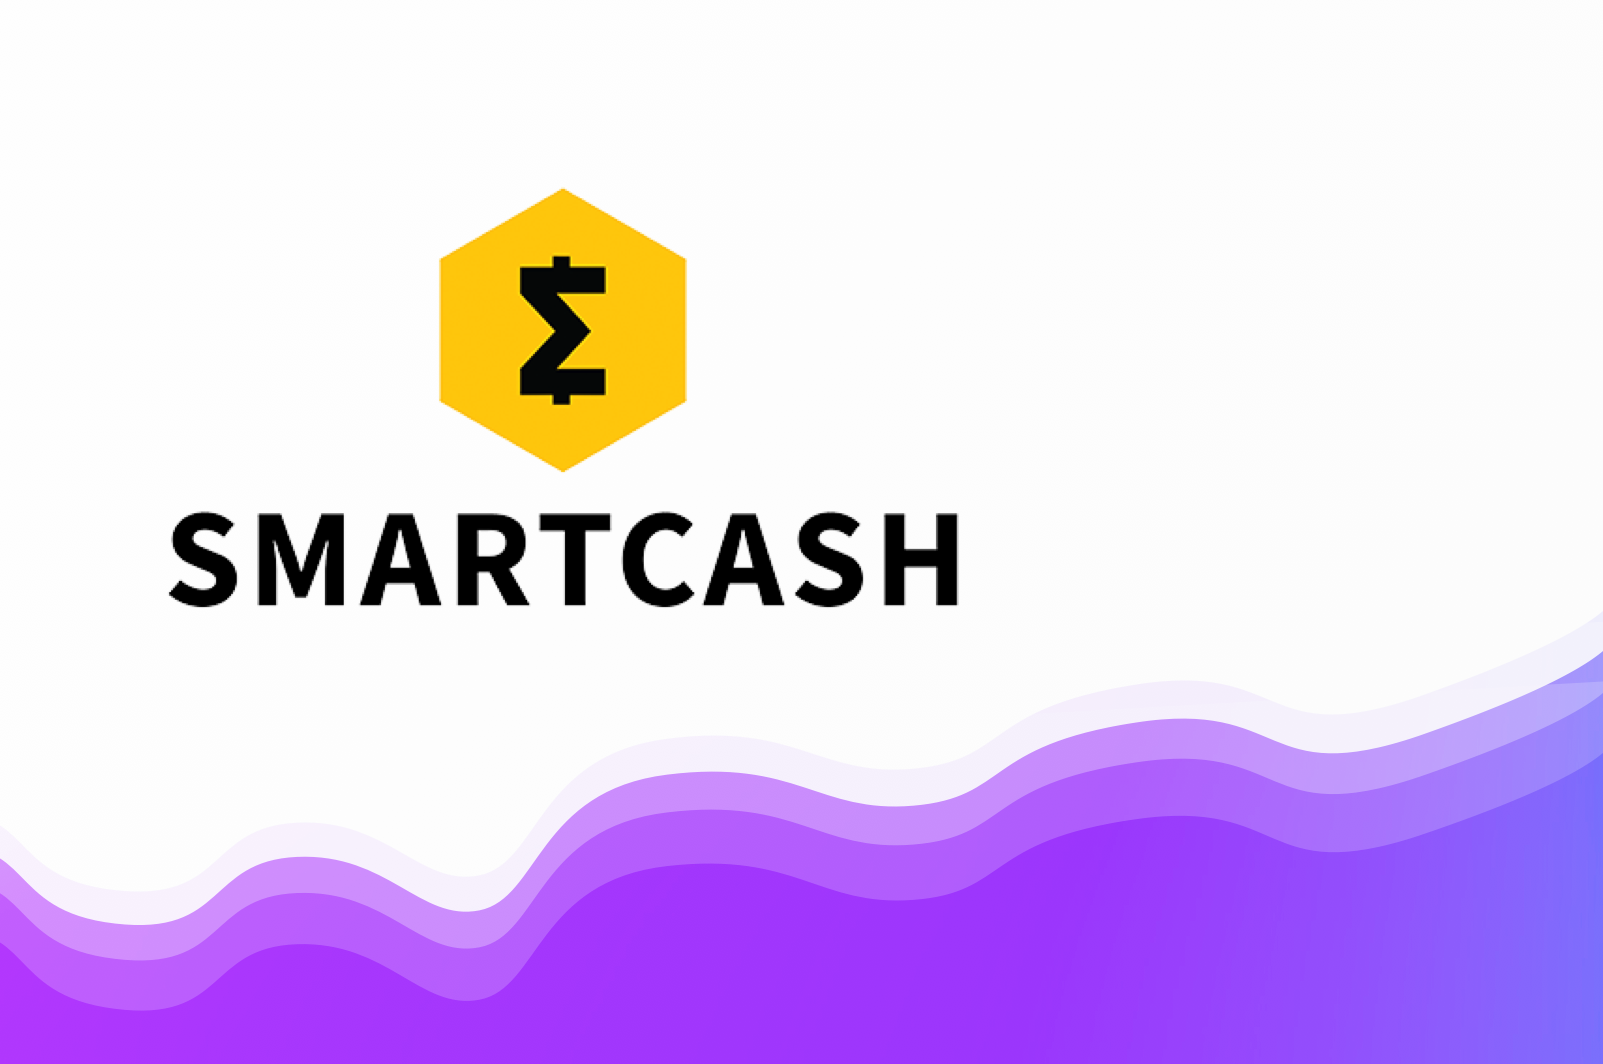 SmartCash - See how I tackled the problem of branding and marketing a new privacy-themed cryptocurrency called Bitcoin Confidential.